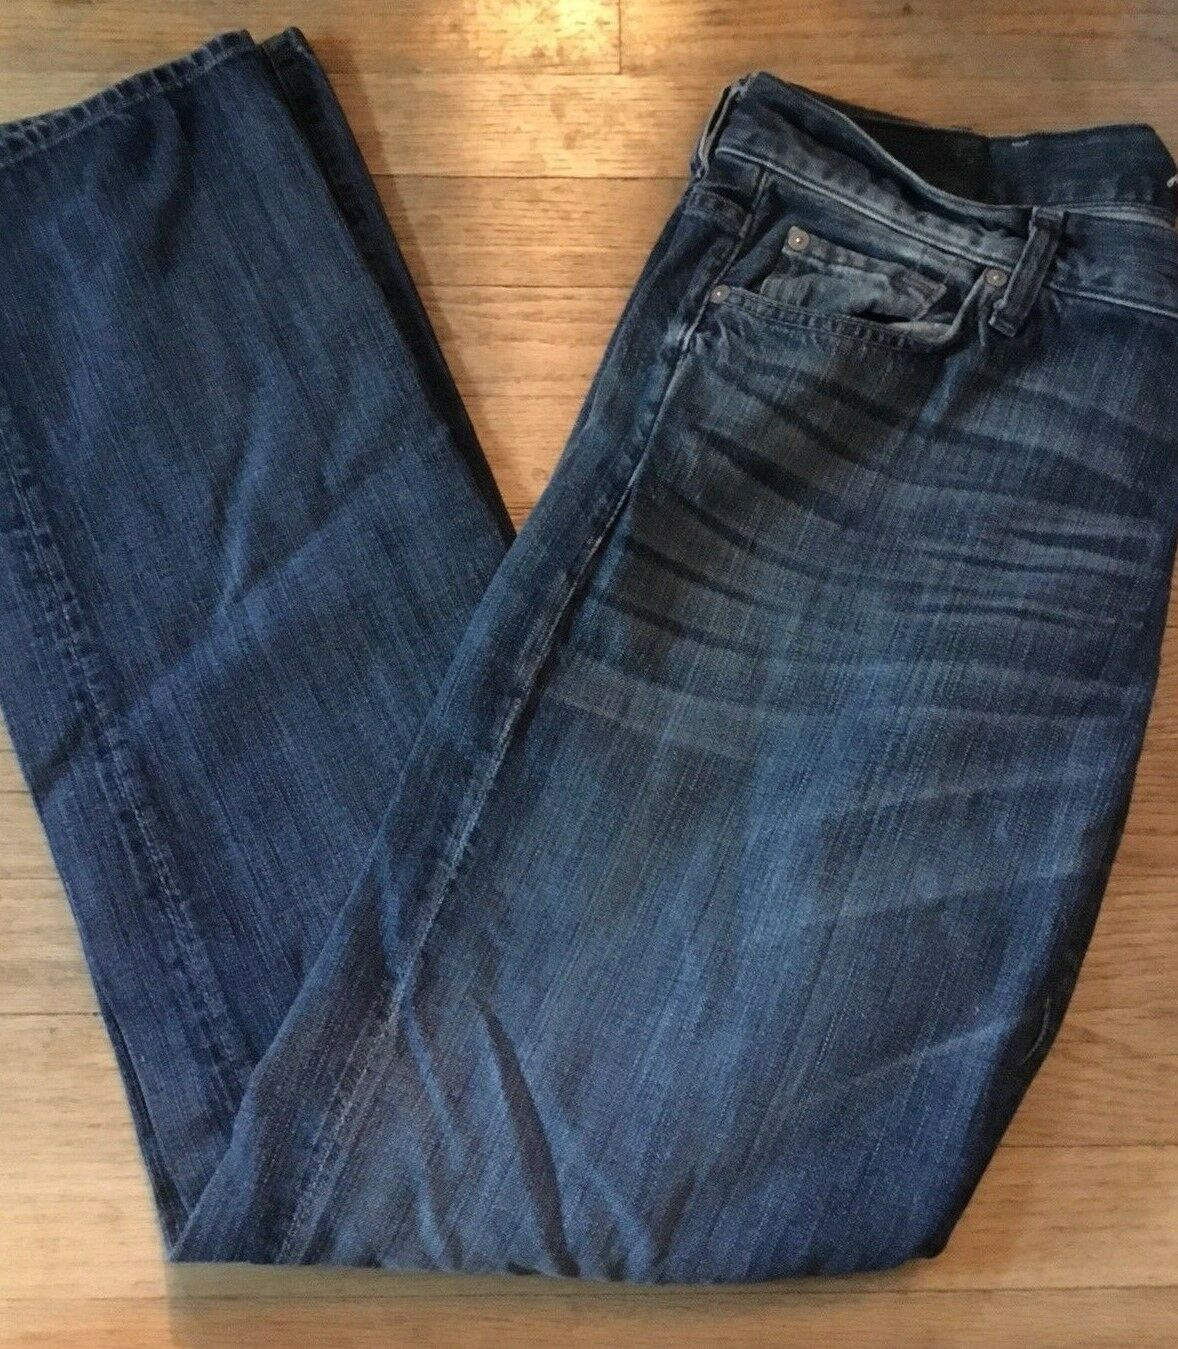 7 FOR ALL MANKIND Men's Size 38 Distressed Whiskered Standard bluee Jeans